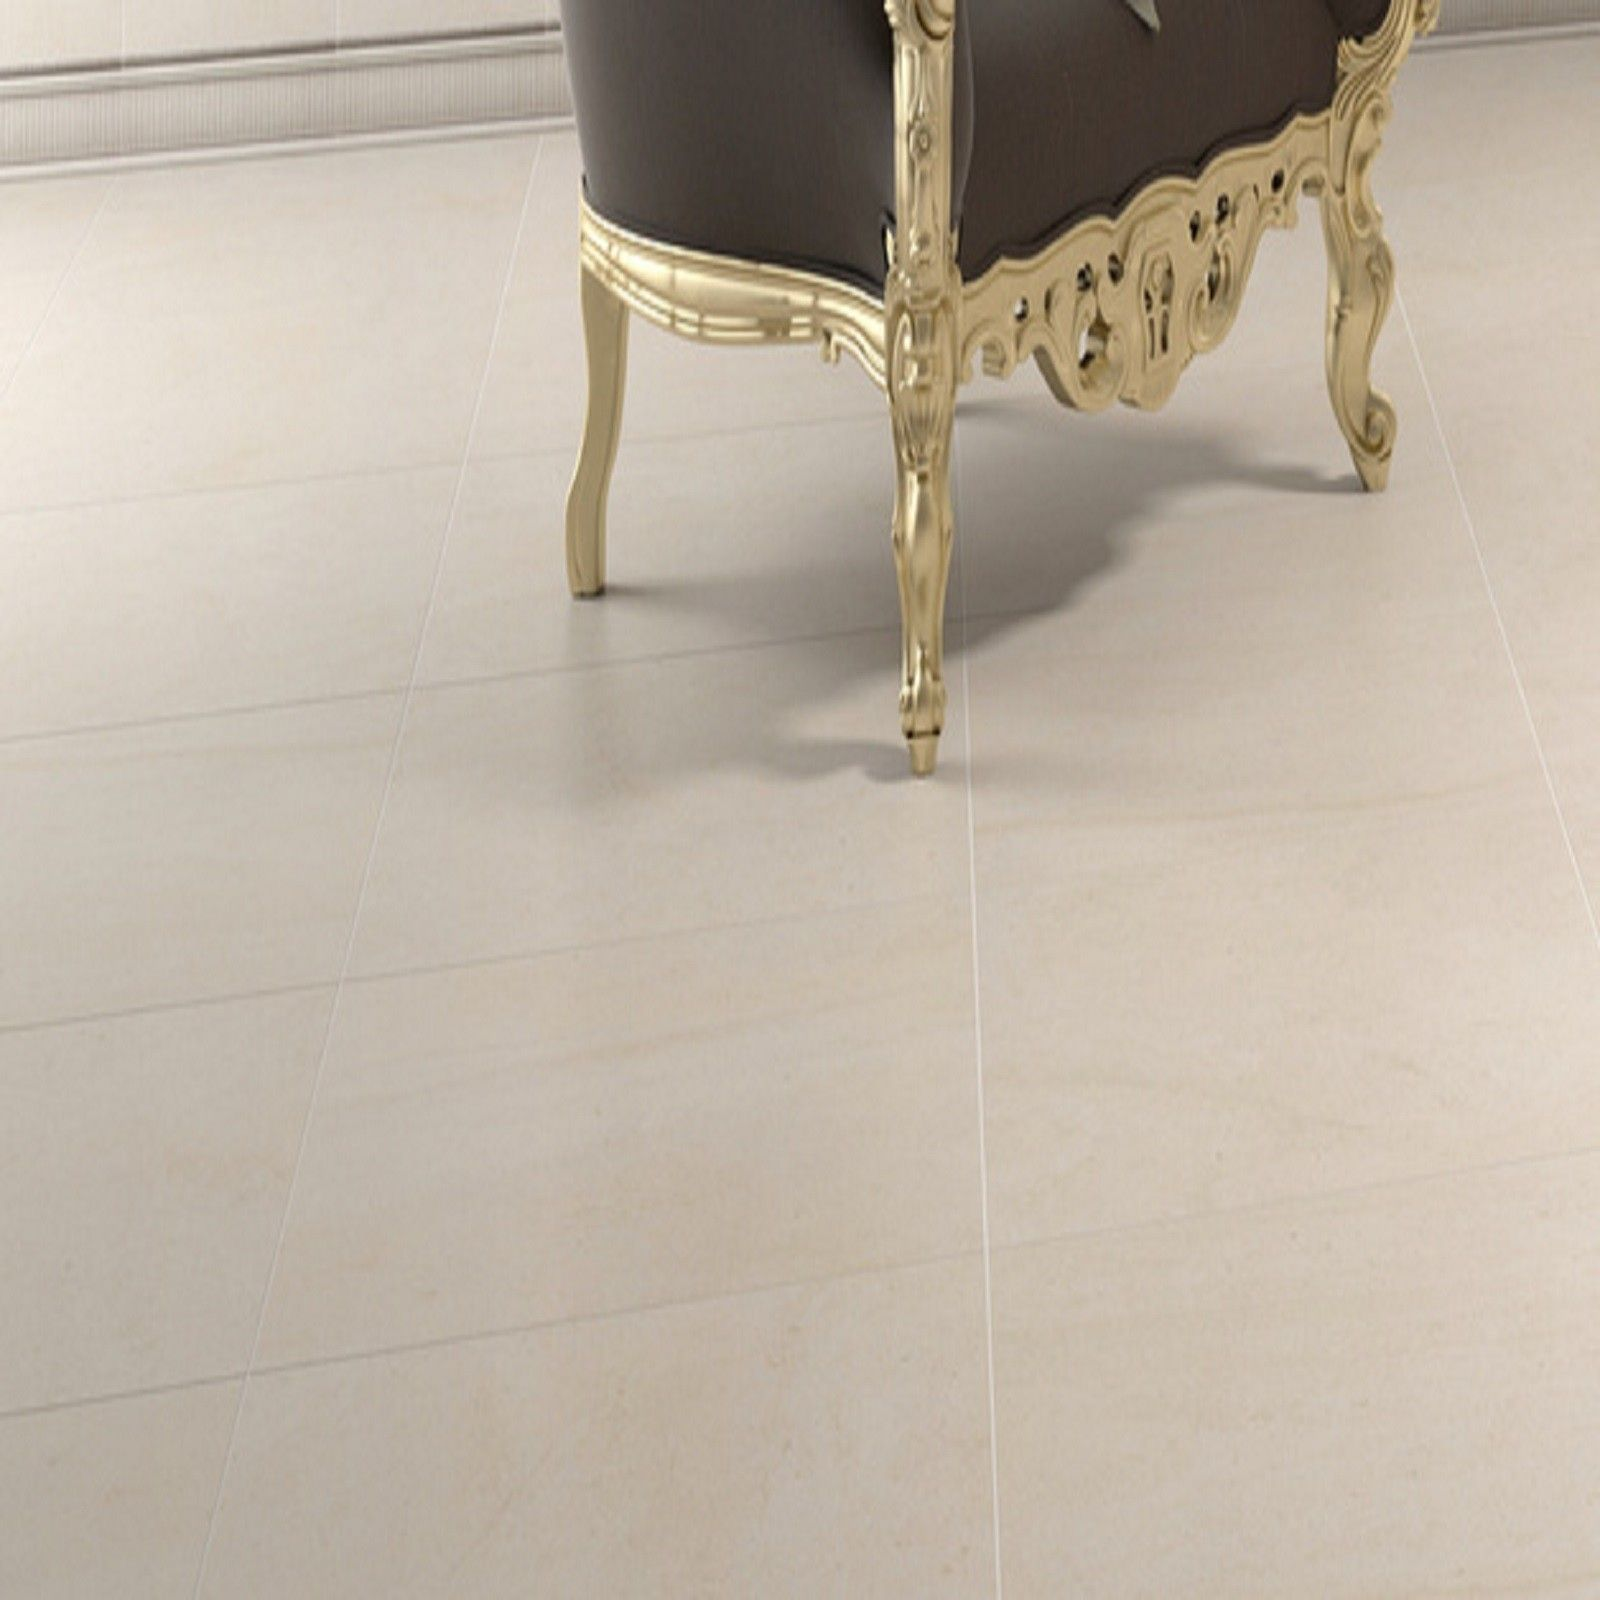 limestone matt almond floor tile | almonds, kitchen floors and